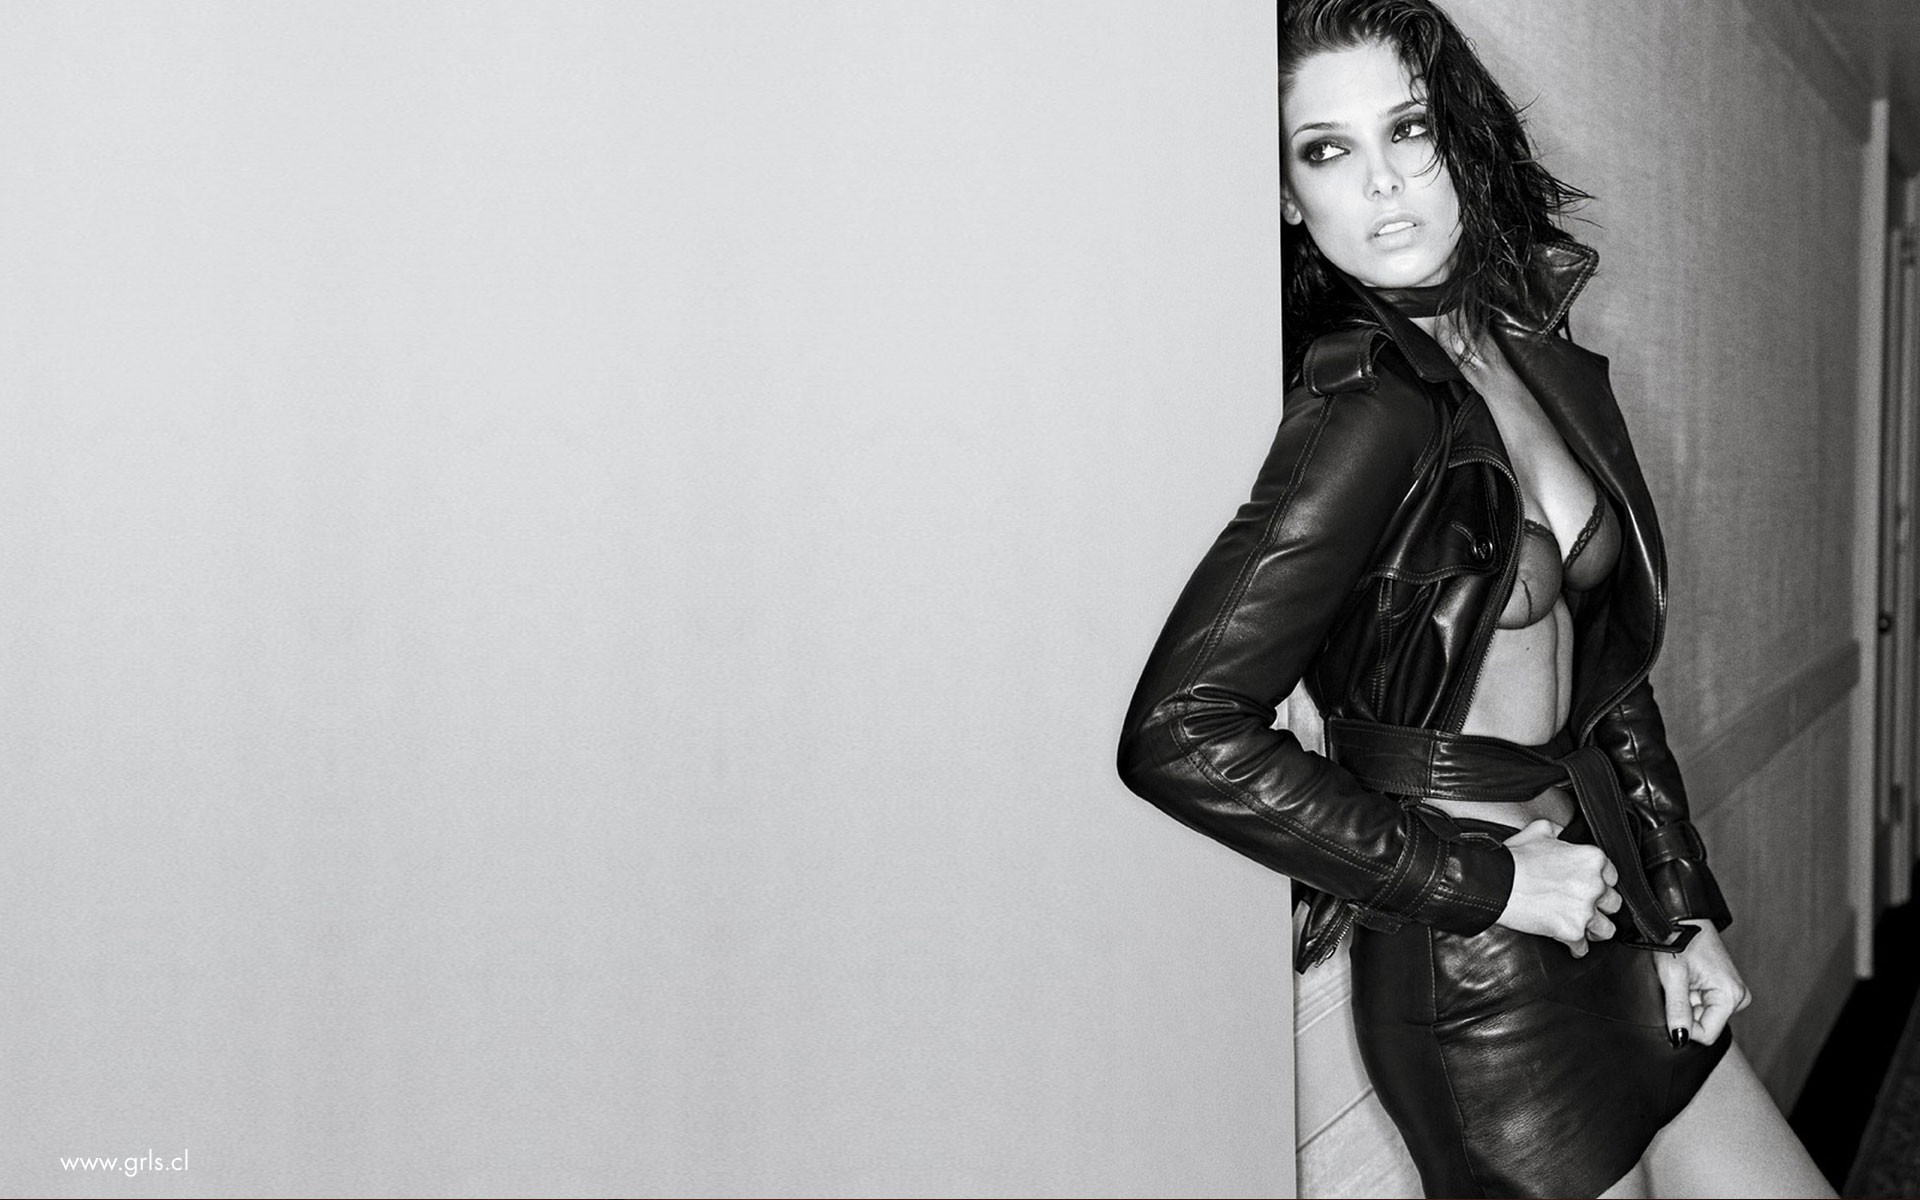 leather woman ashley greene HD Wallpaper